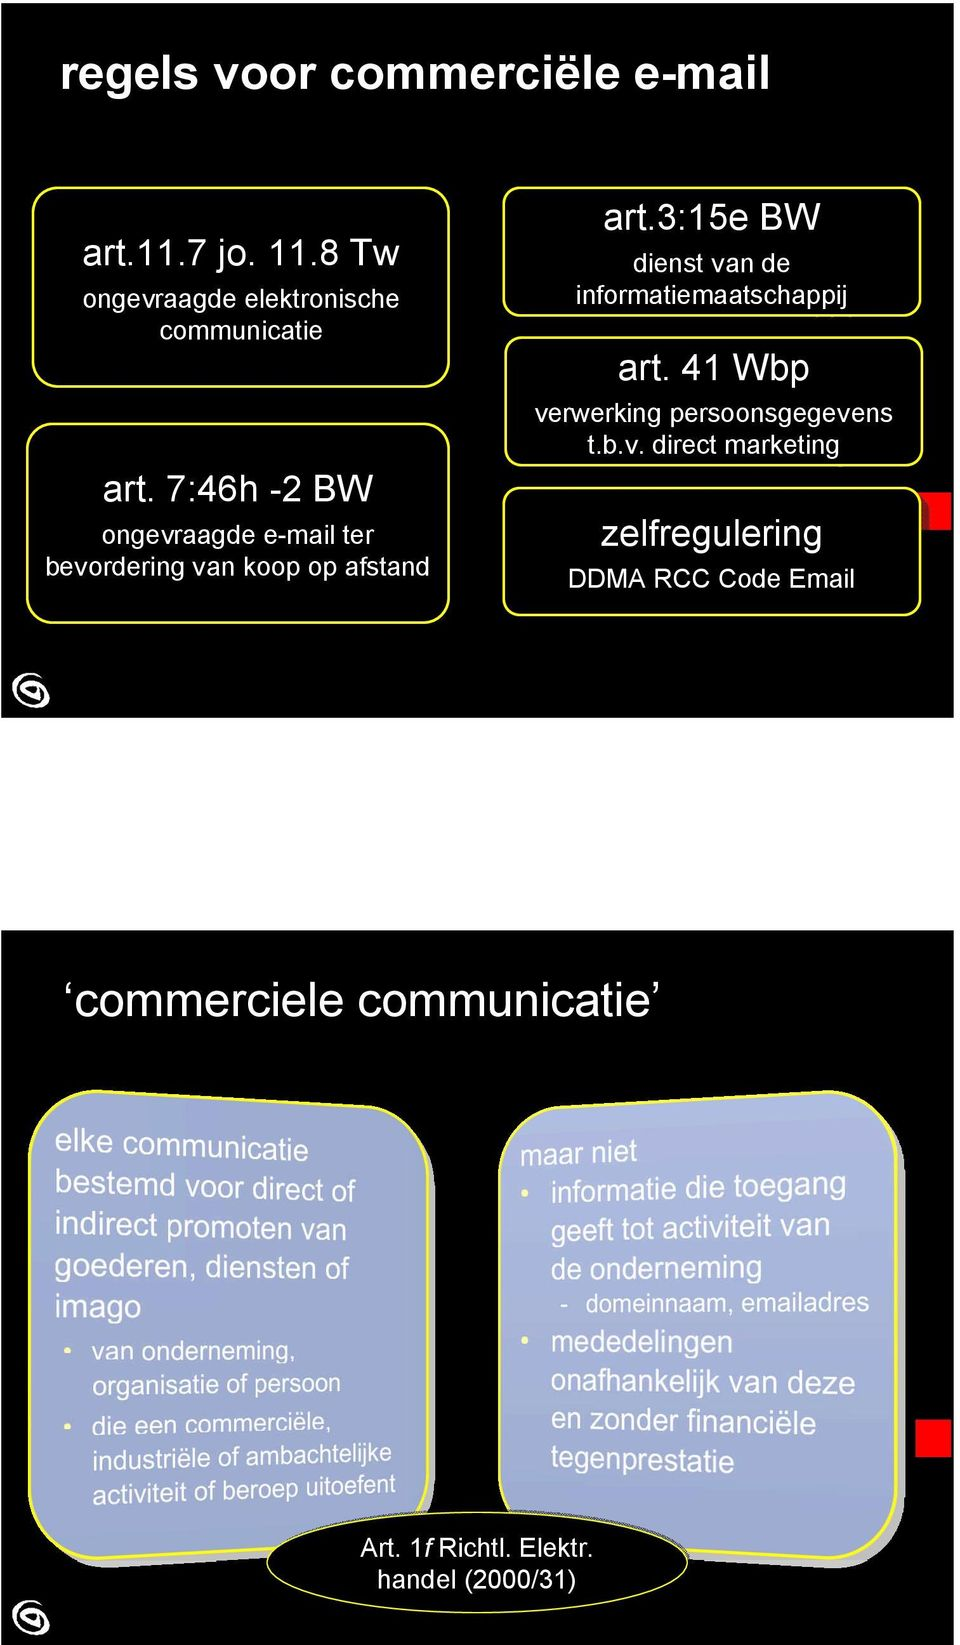 3:15e BW dienst van van de de informatiemaatschappij art. 41 Wbp verwerking persoonsgegevens t.b.v. t.b.v. direct marketing zelfregulering DDMA RCC RCC Code Email commerciele communicatie Art.